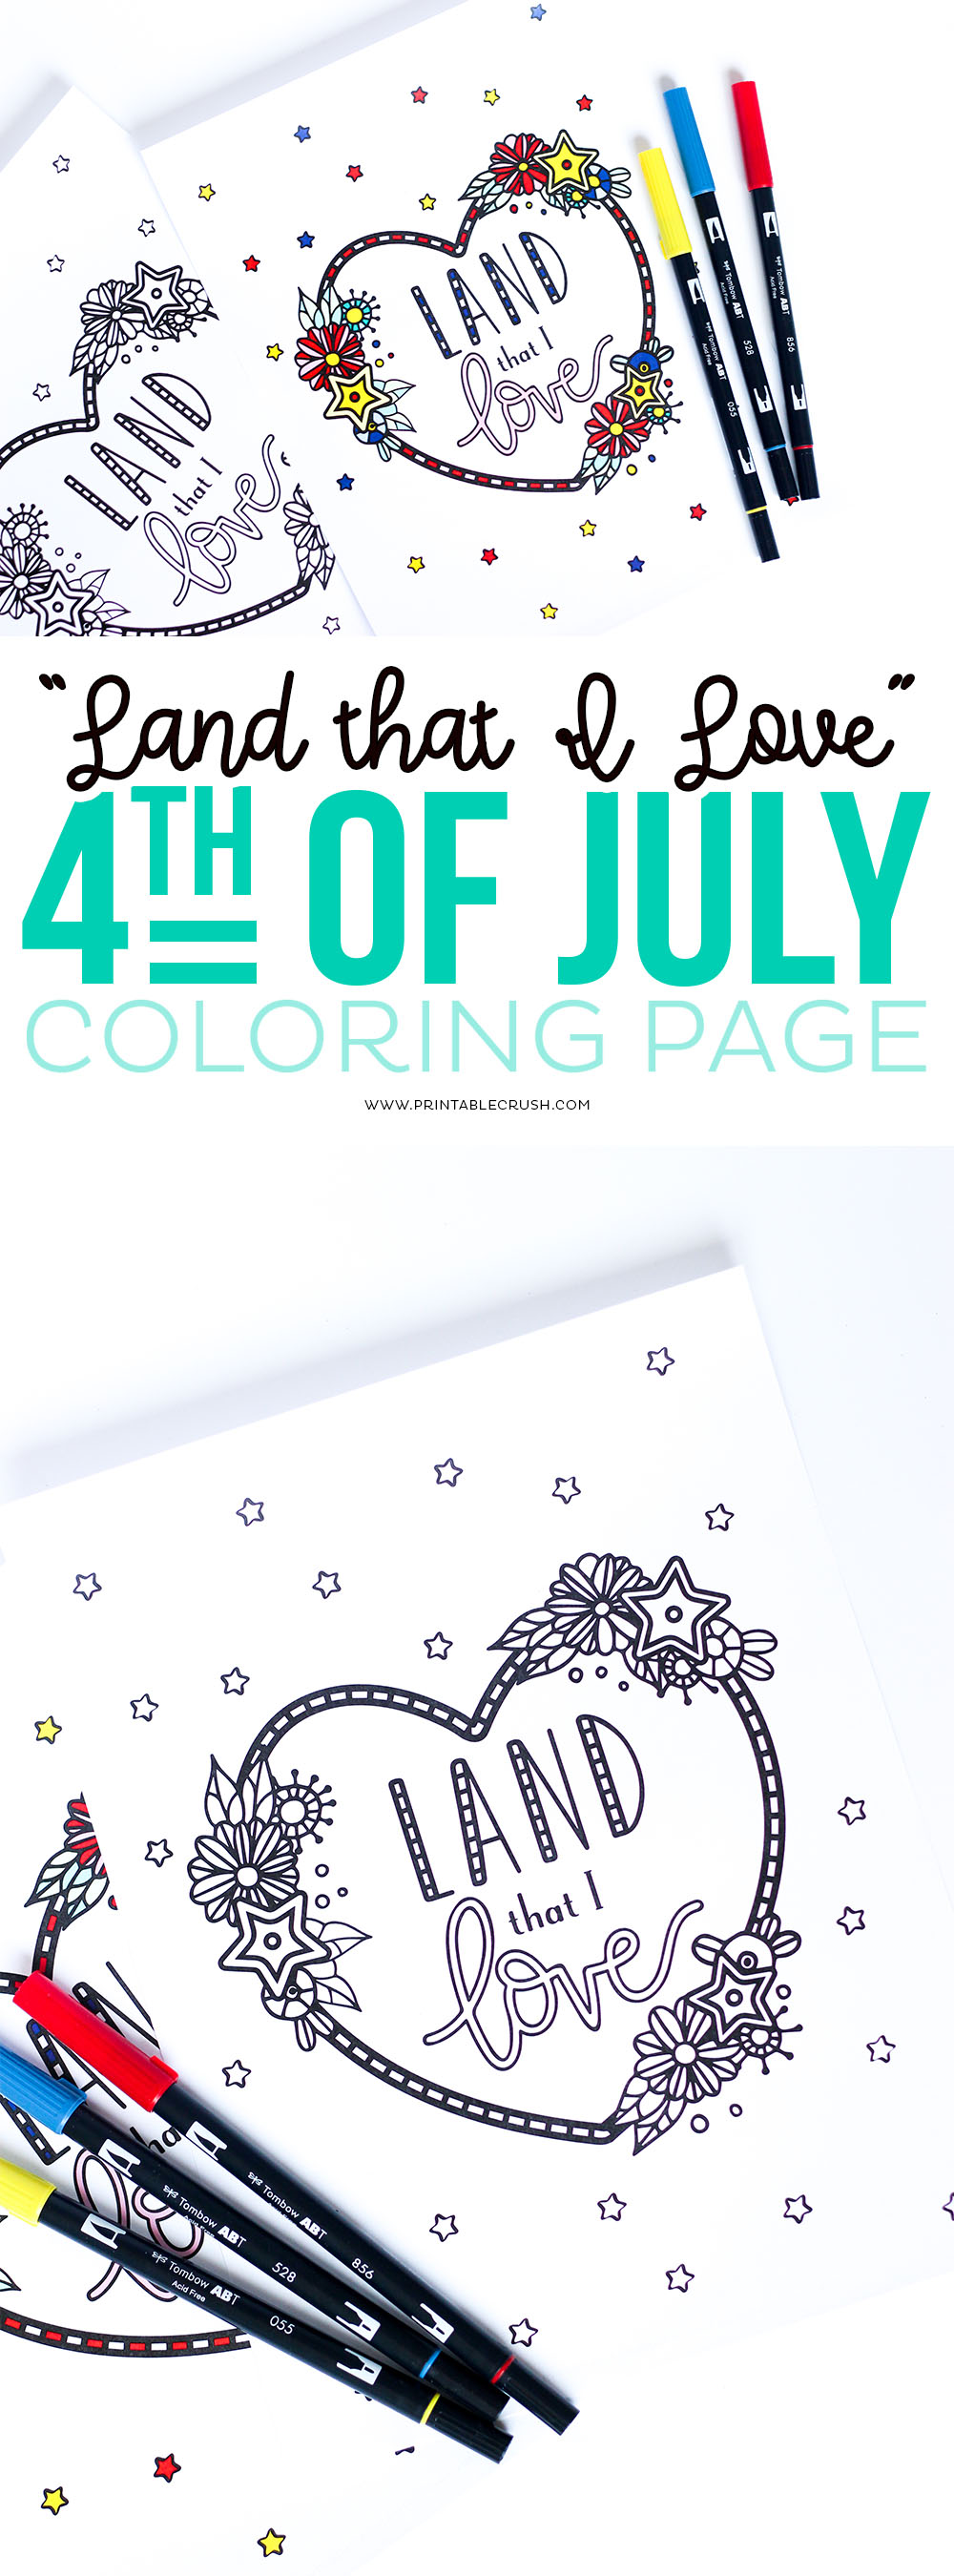 Download this free Land That I Love Fourth of July Coloring Page for a fun summer activity! Kids and adults will love this hand lettered and hand drawn design! #coloringpage #fourthofjuly #handlettered #adultcoloringbook #summercoloringpage